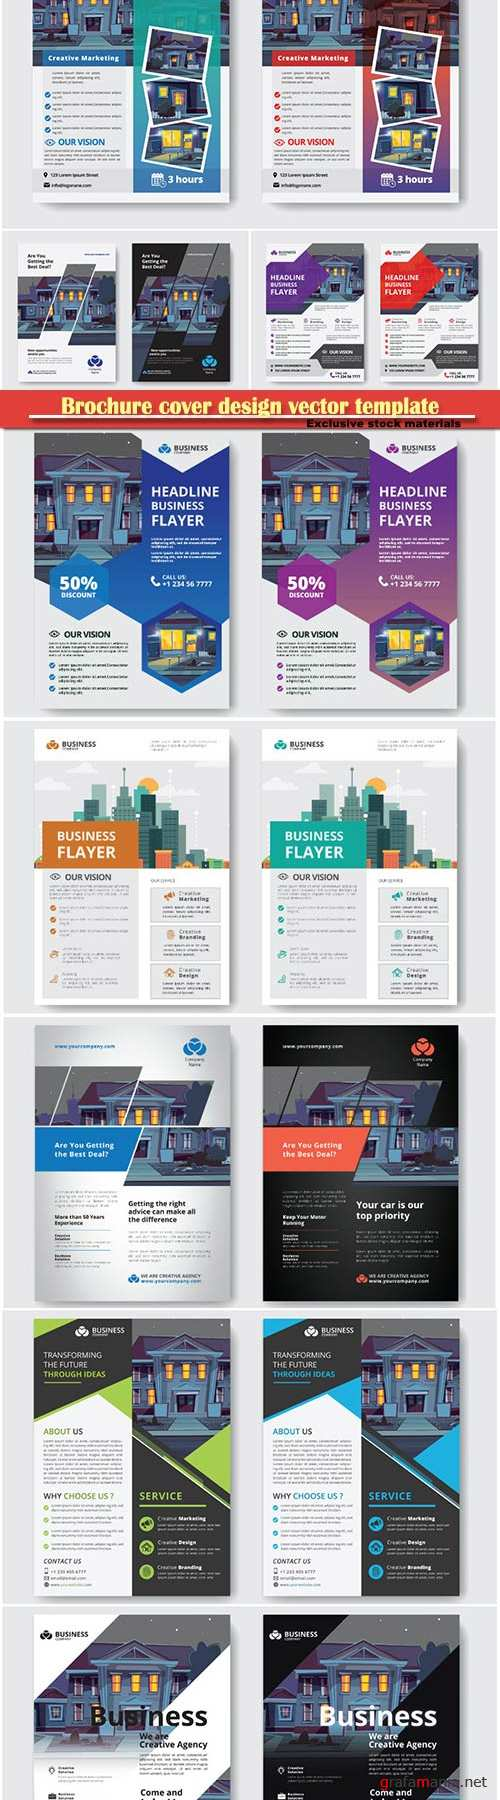 Brochure cover design vector template # 5